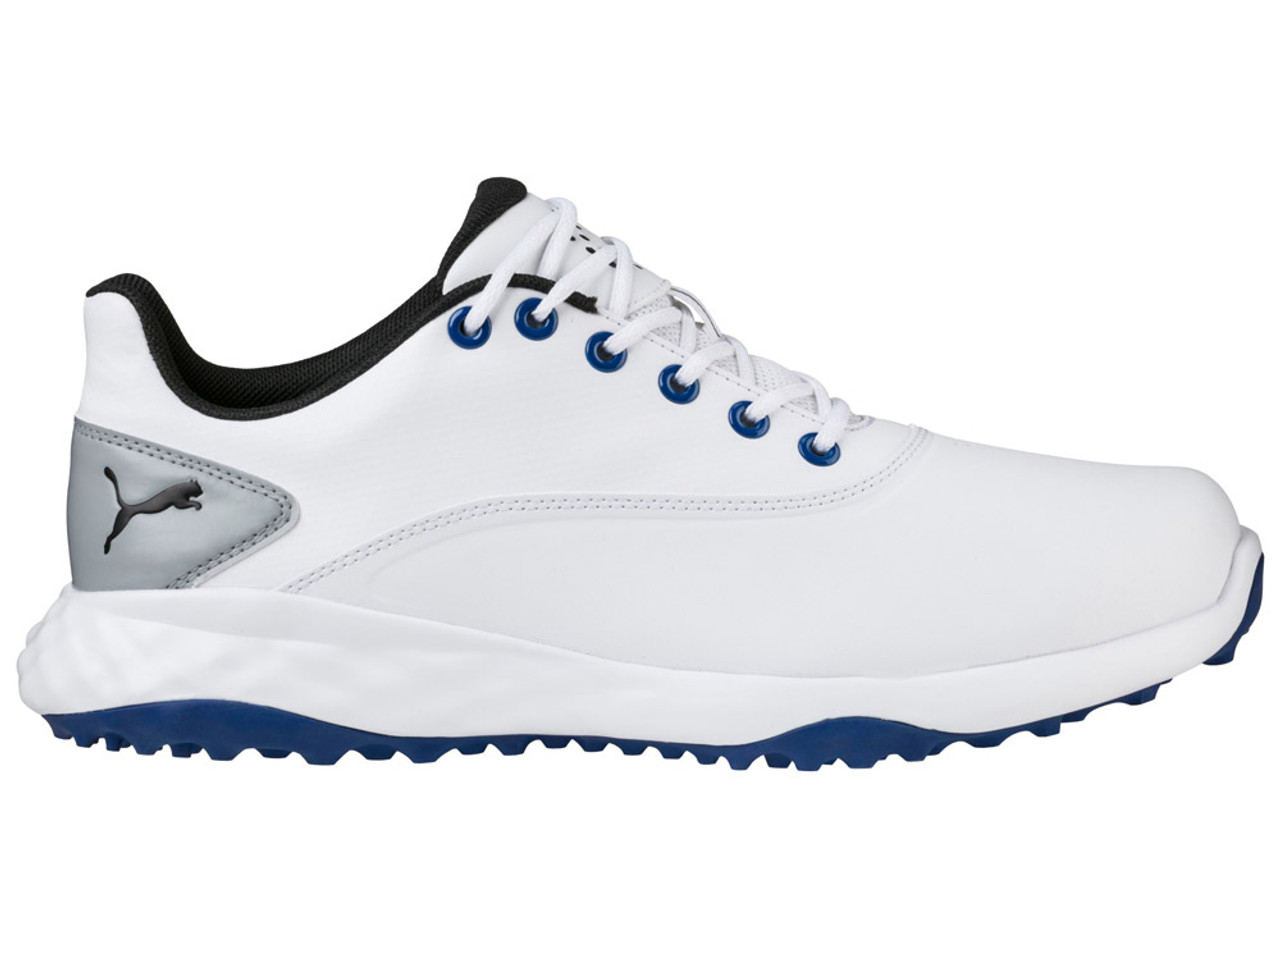 Puma Grip Fusion Shoes WhiteBlackTrue Blue